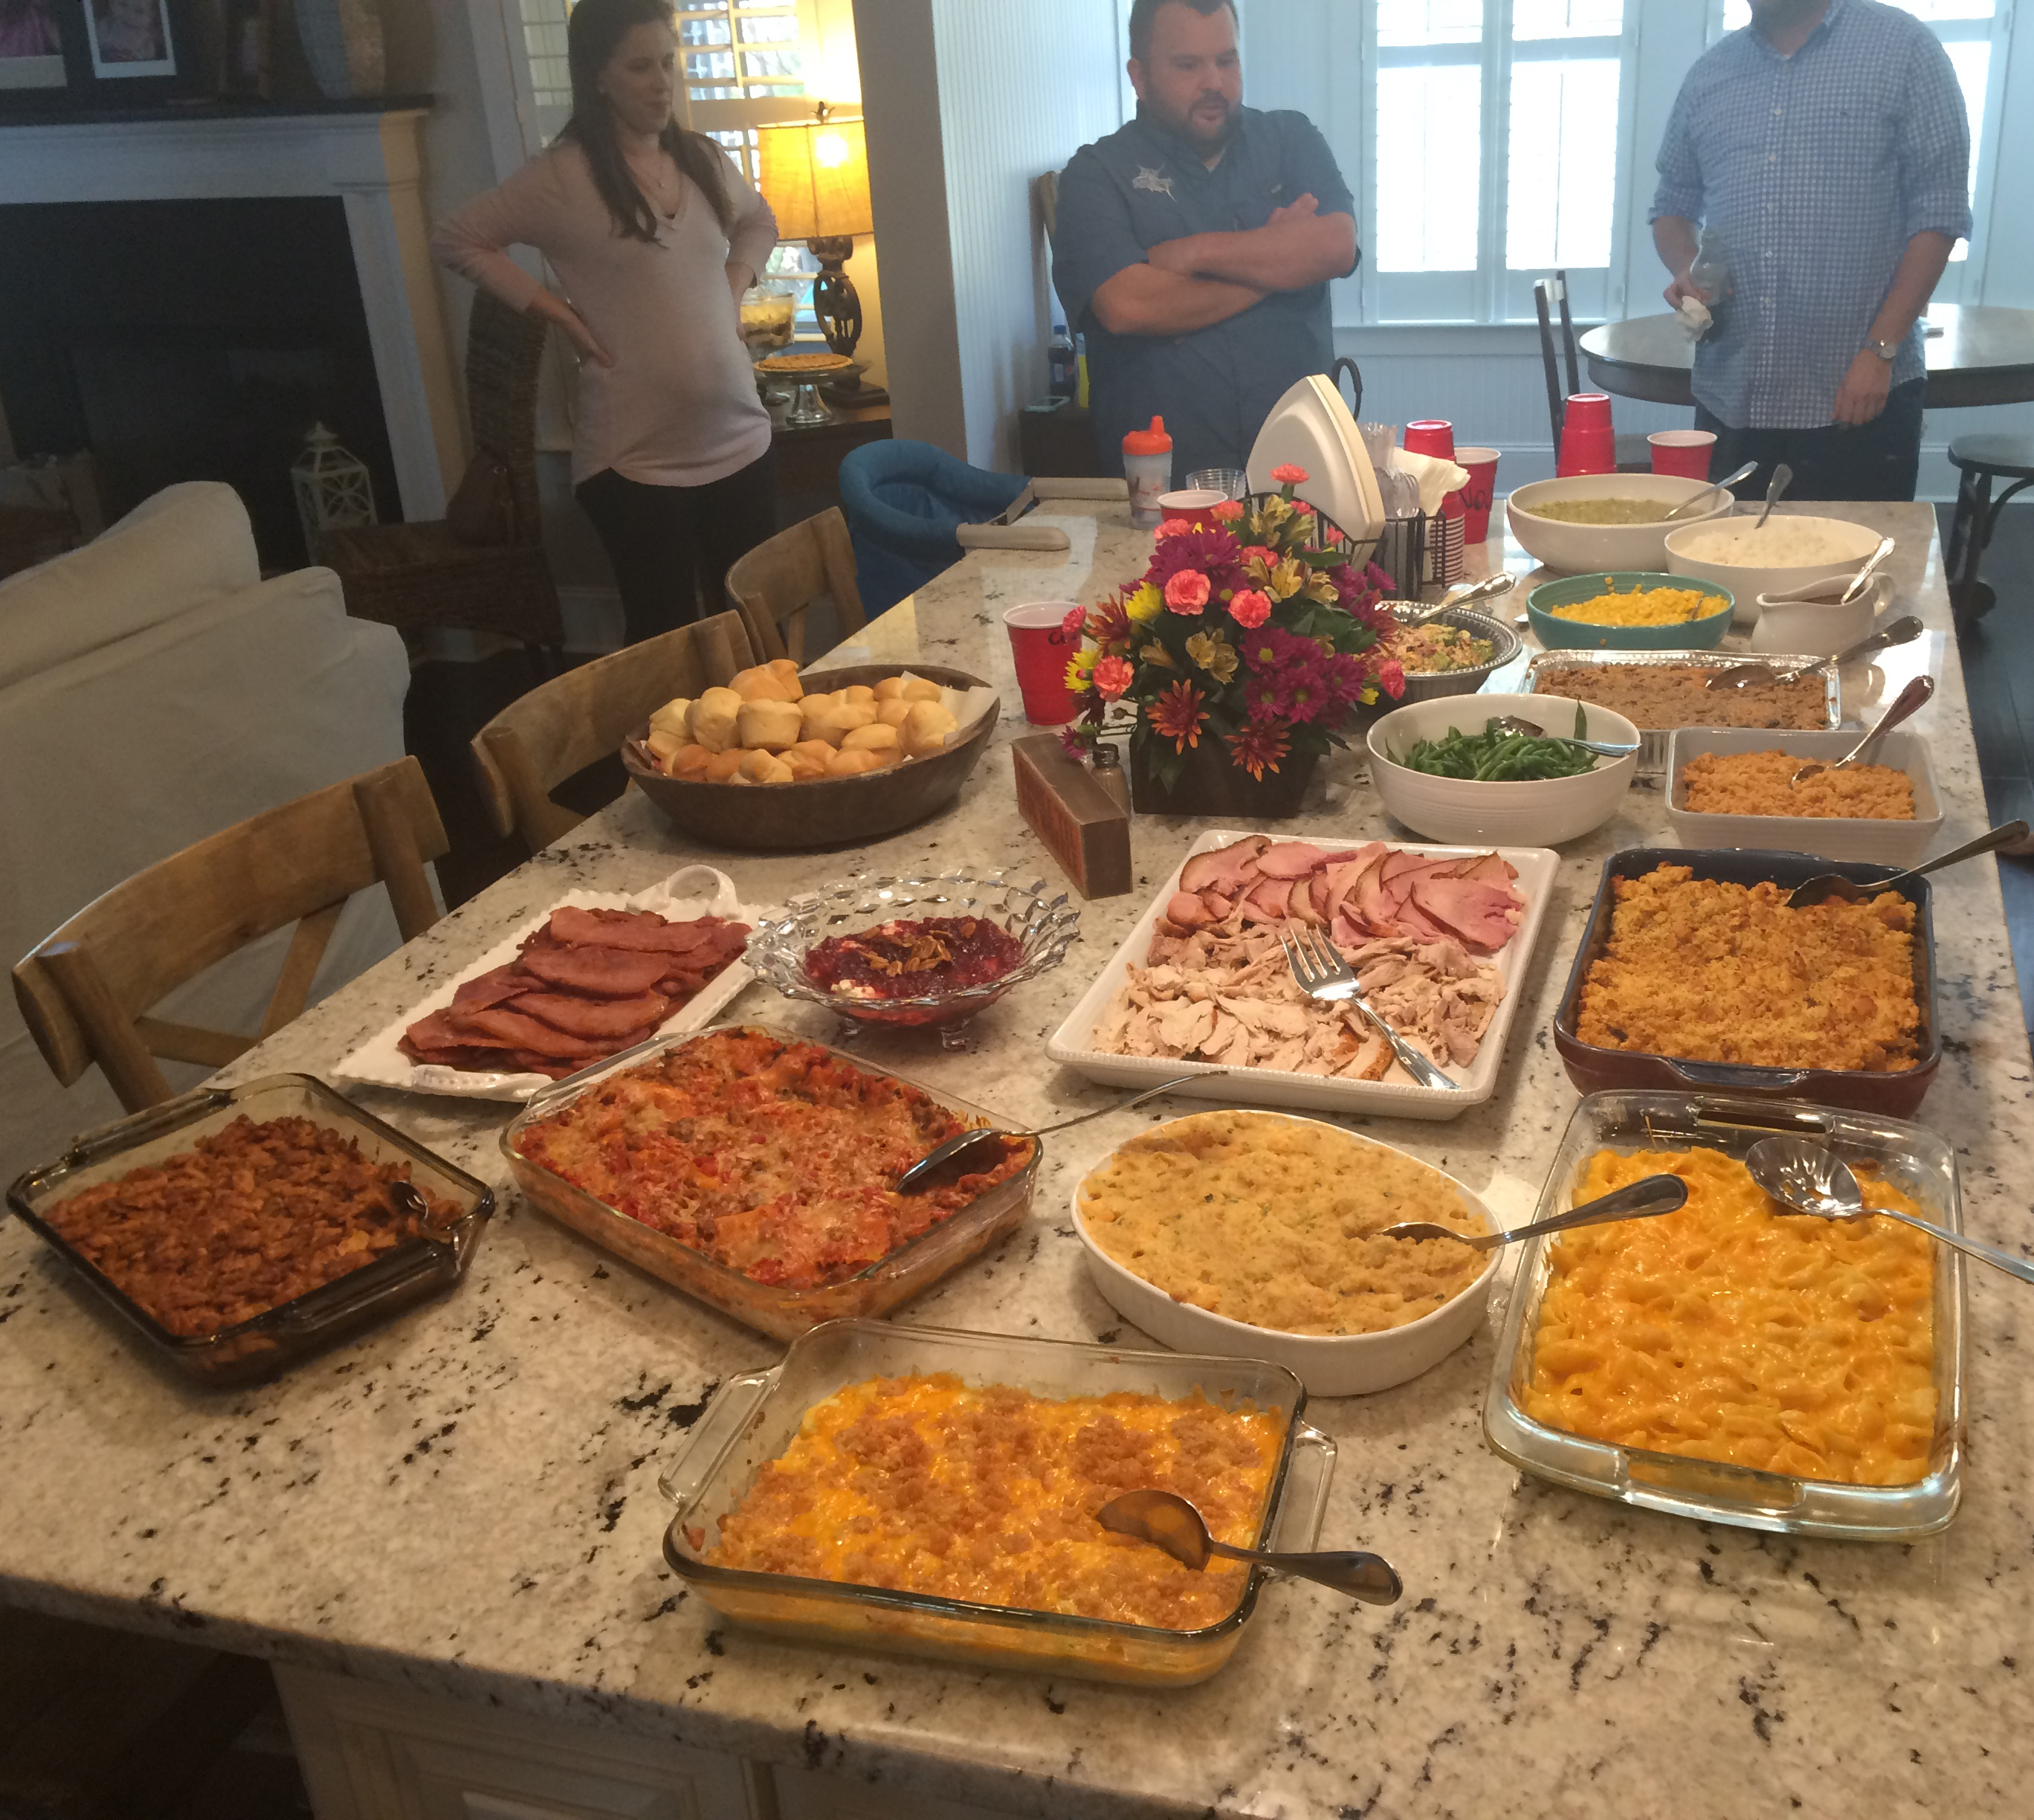 A look at our large Thanksgiving spread.